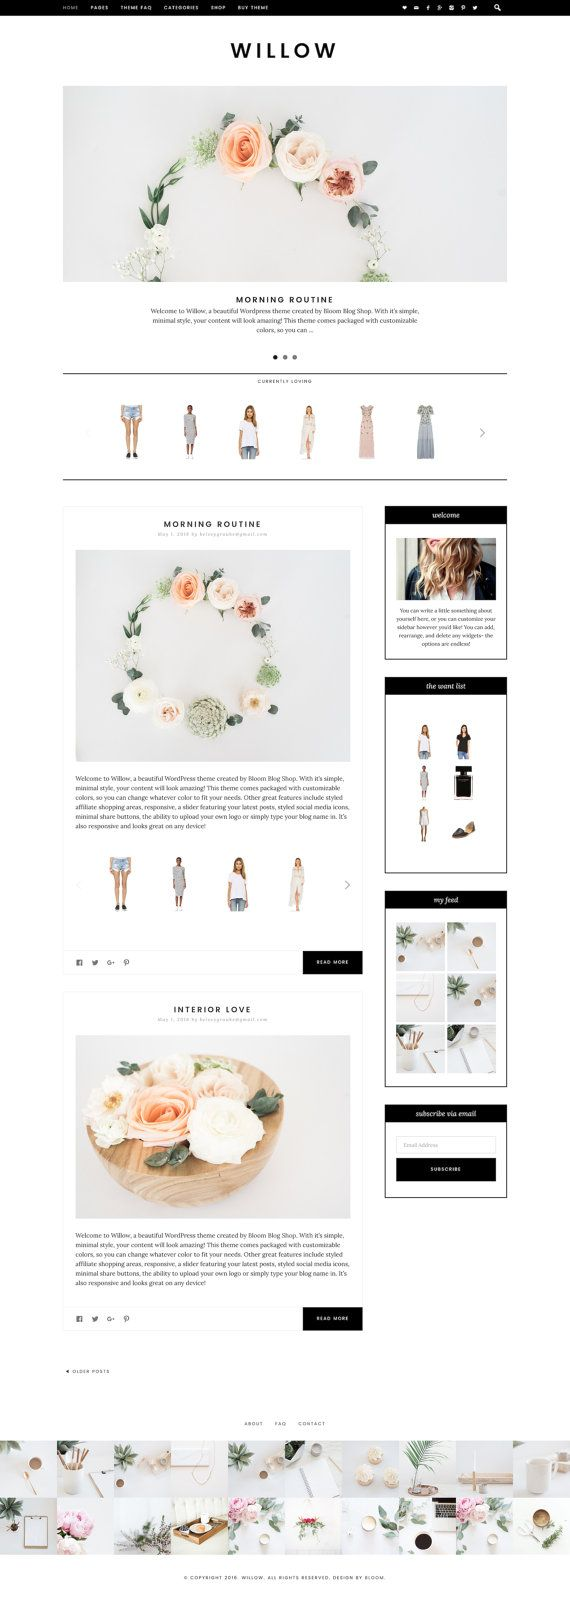 Willow Minimalist WordPress Theme RESPONSIVE Wordpress   Willow features widget areas to showcase your shopping links, a styled slider, custom category pages, integration with shopping affiliate companies, flexible footer area, our customizer option to change any color you'd like, and lots more! #affiliate